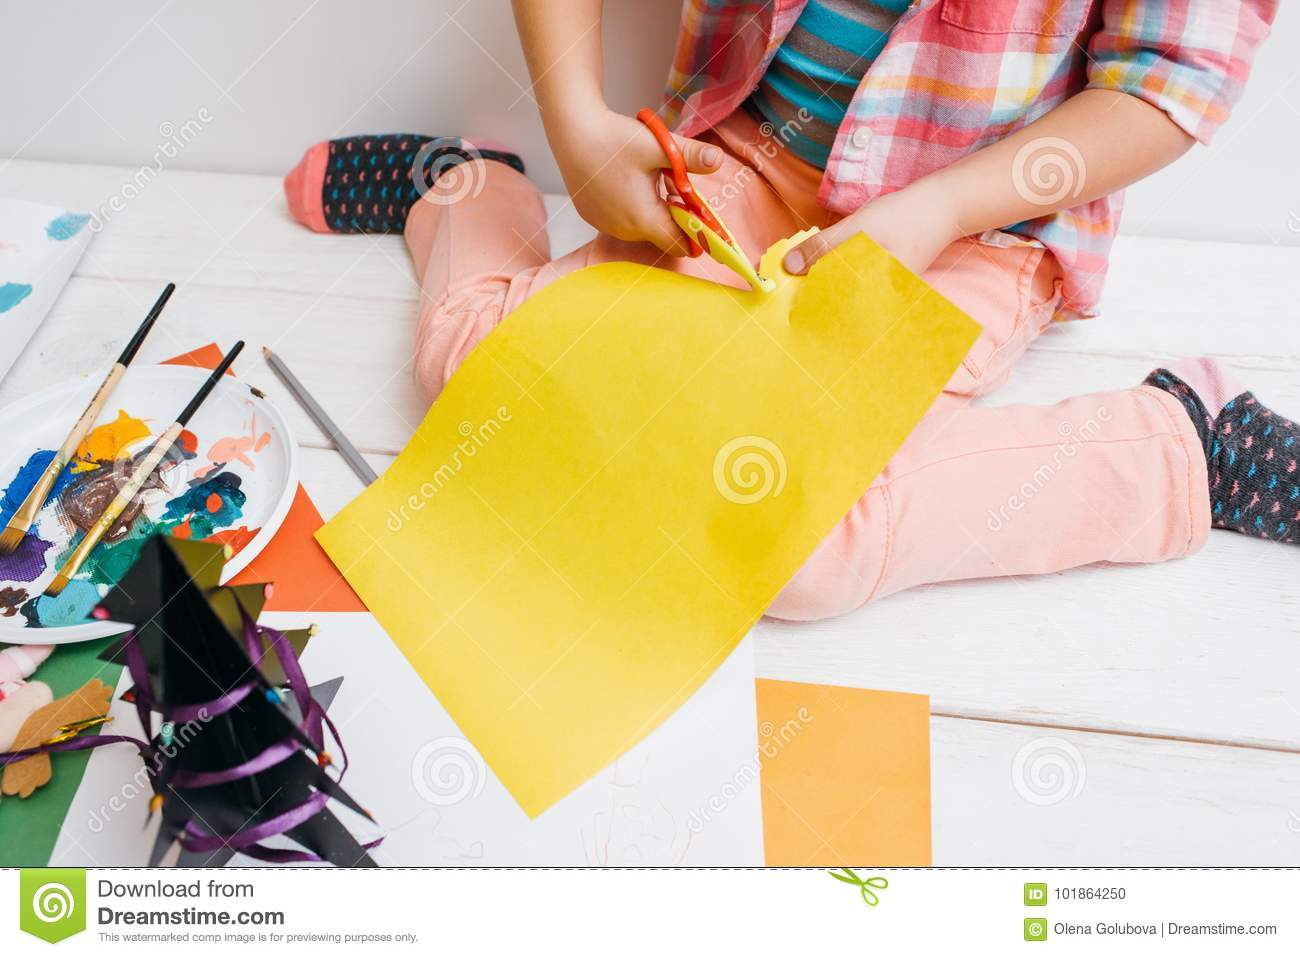 Greeting Cards Preparation Artwork In Process Stock Photo Image